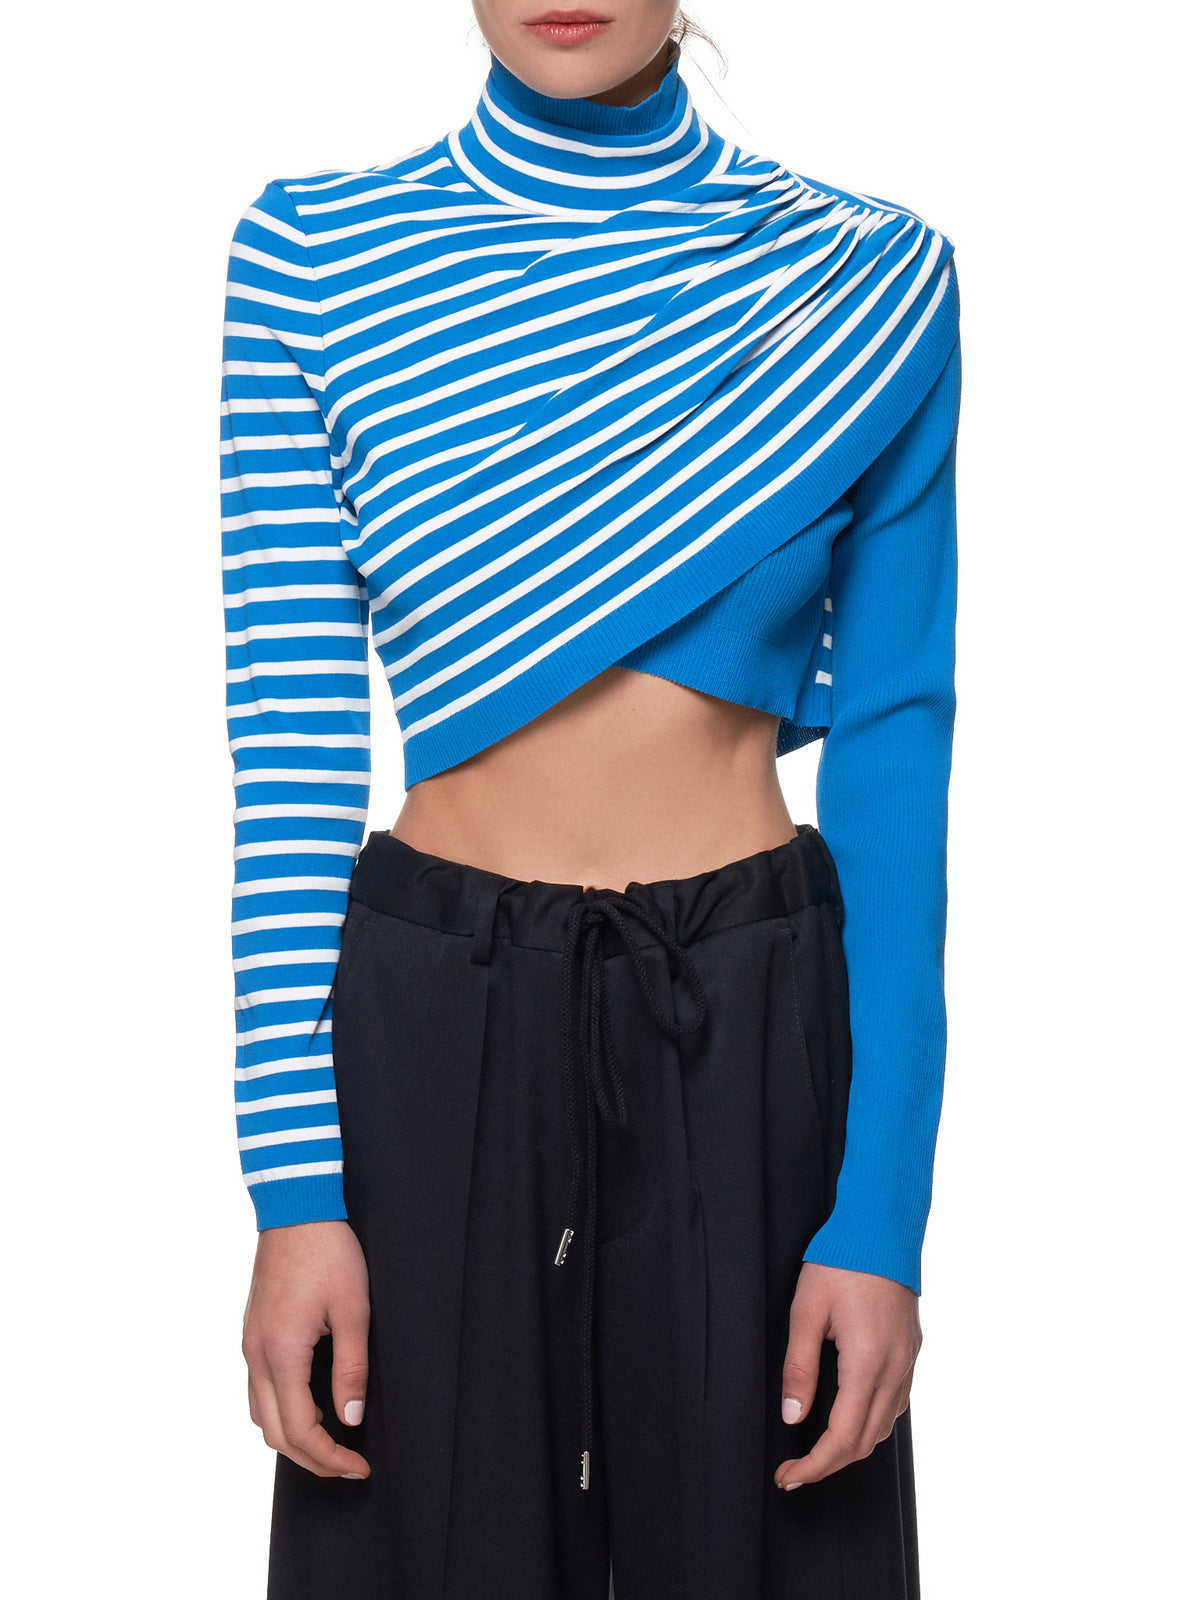 Cropped Turtleneck Sweater (11CY8005-BLUE-IRIS)